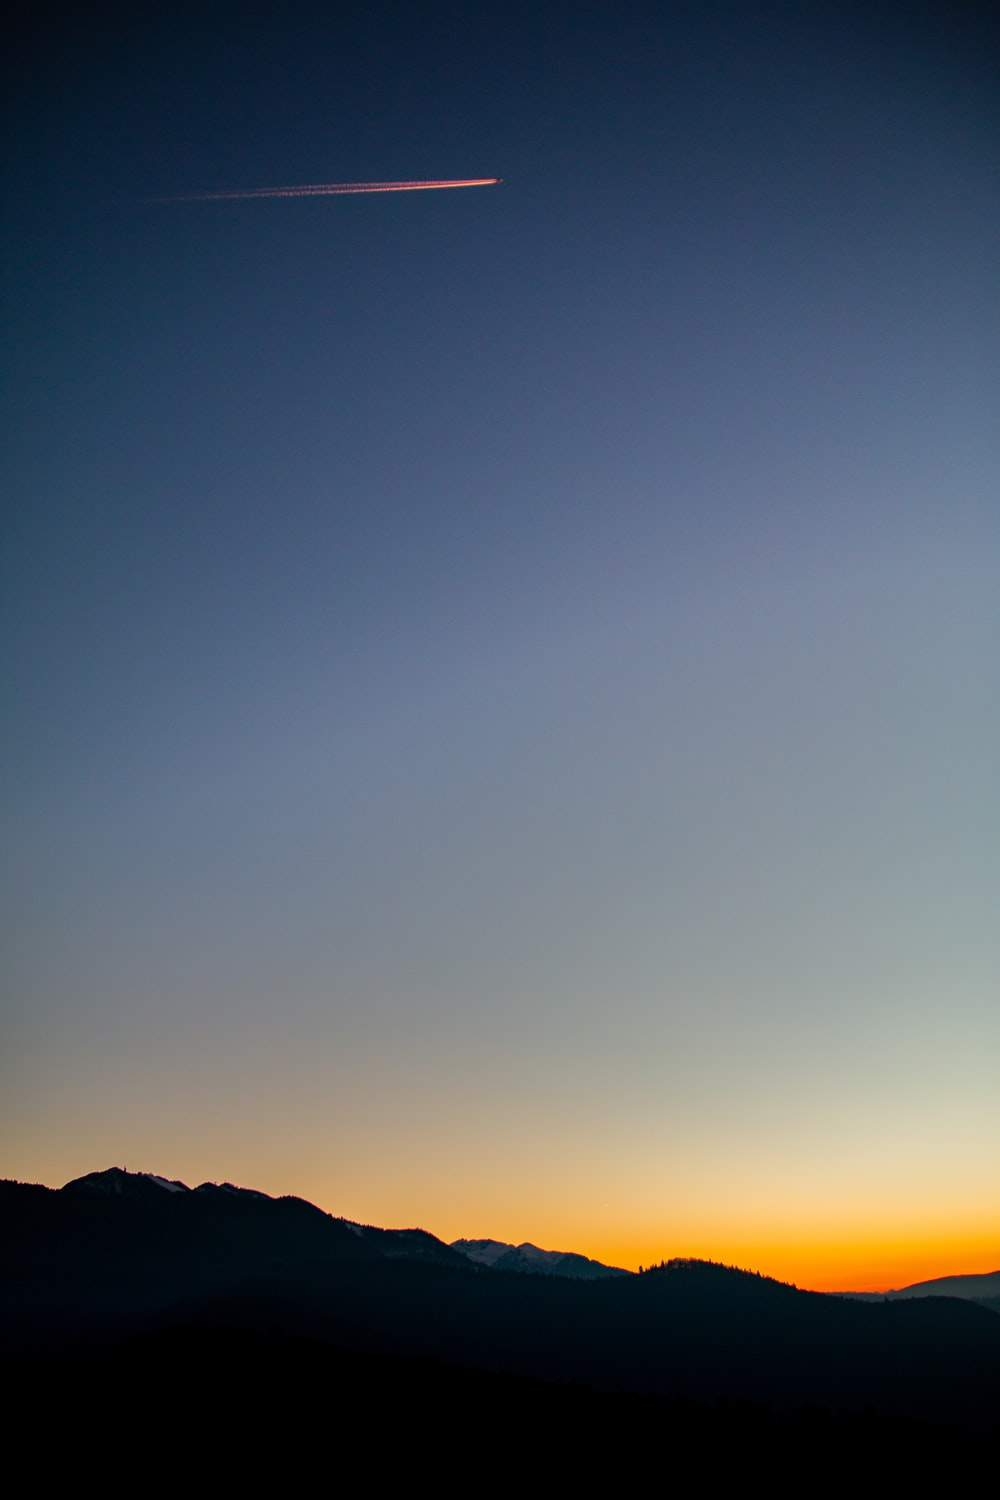 silhouette of mountain under blue and orange skies